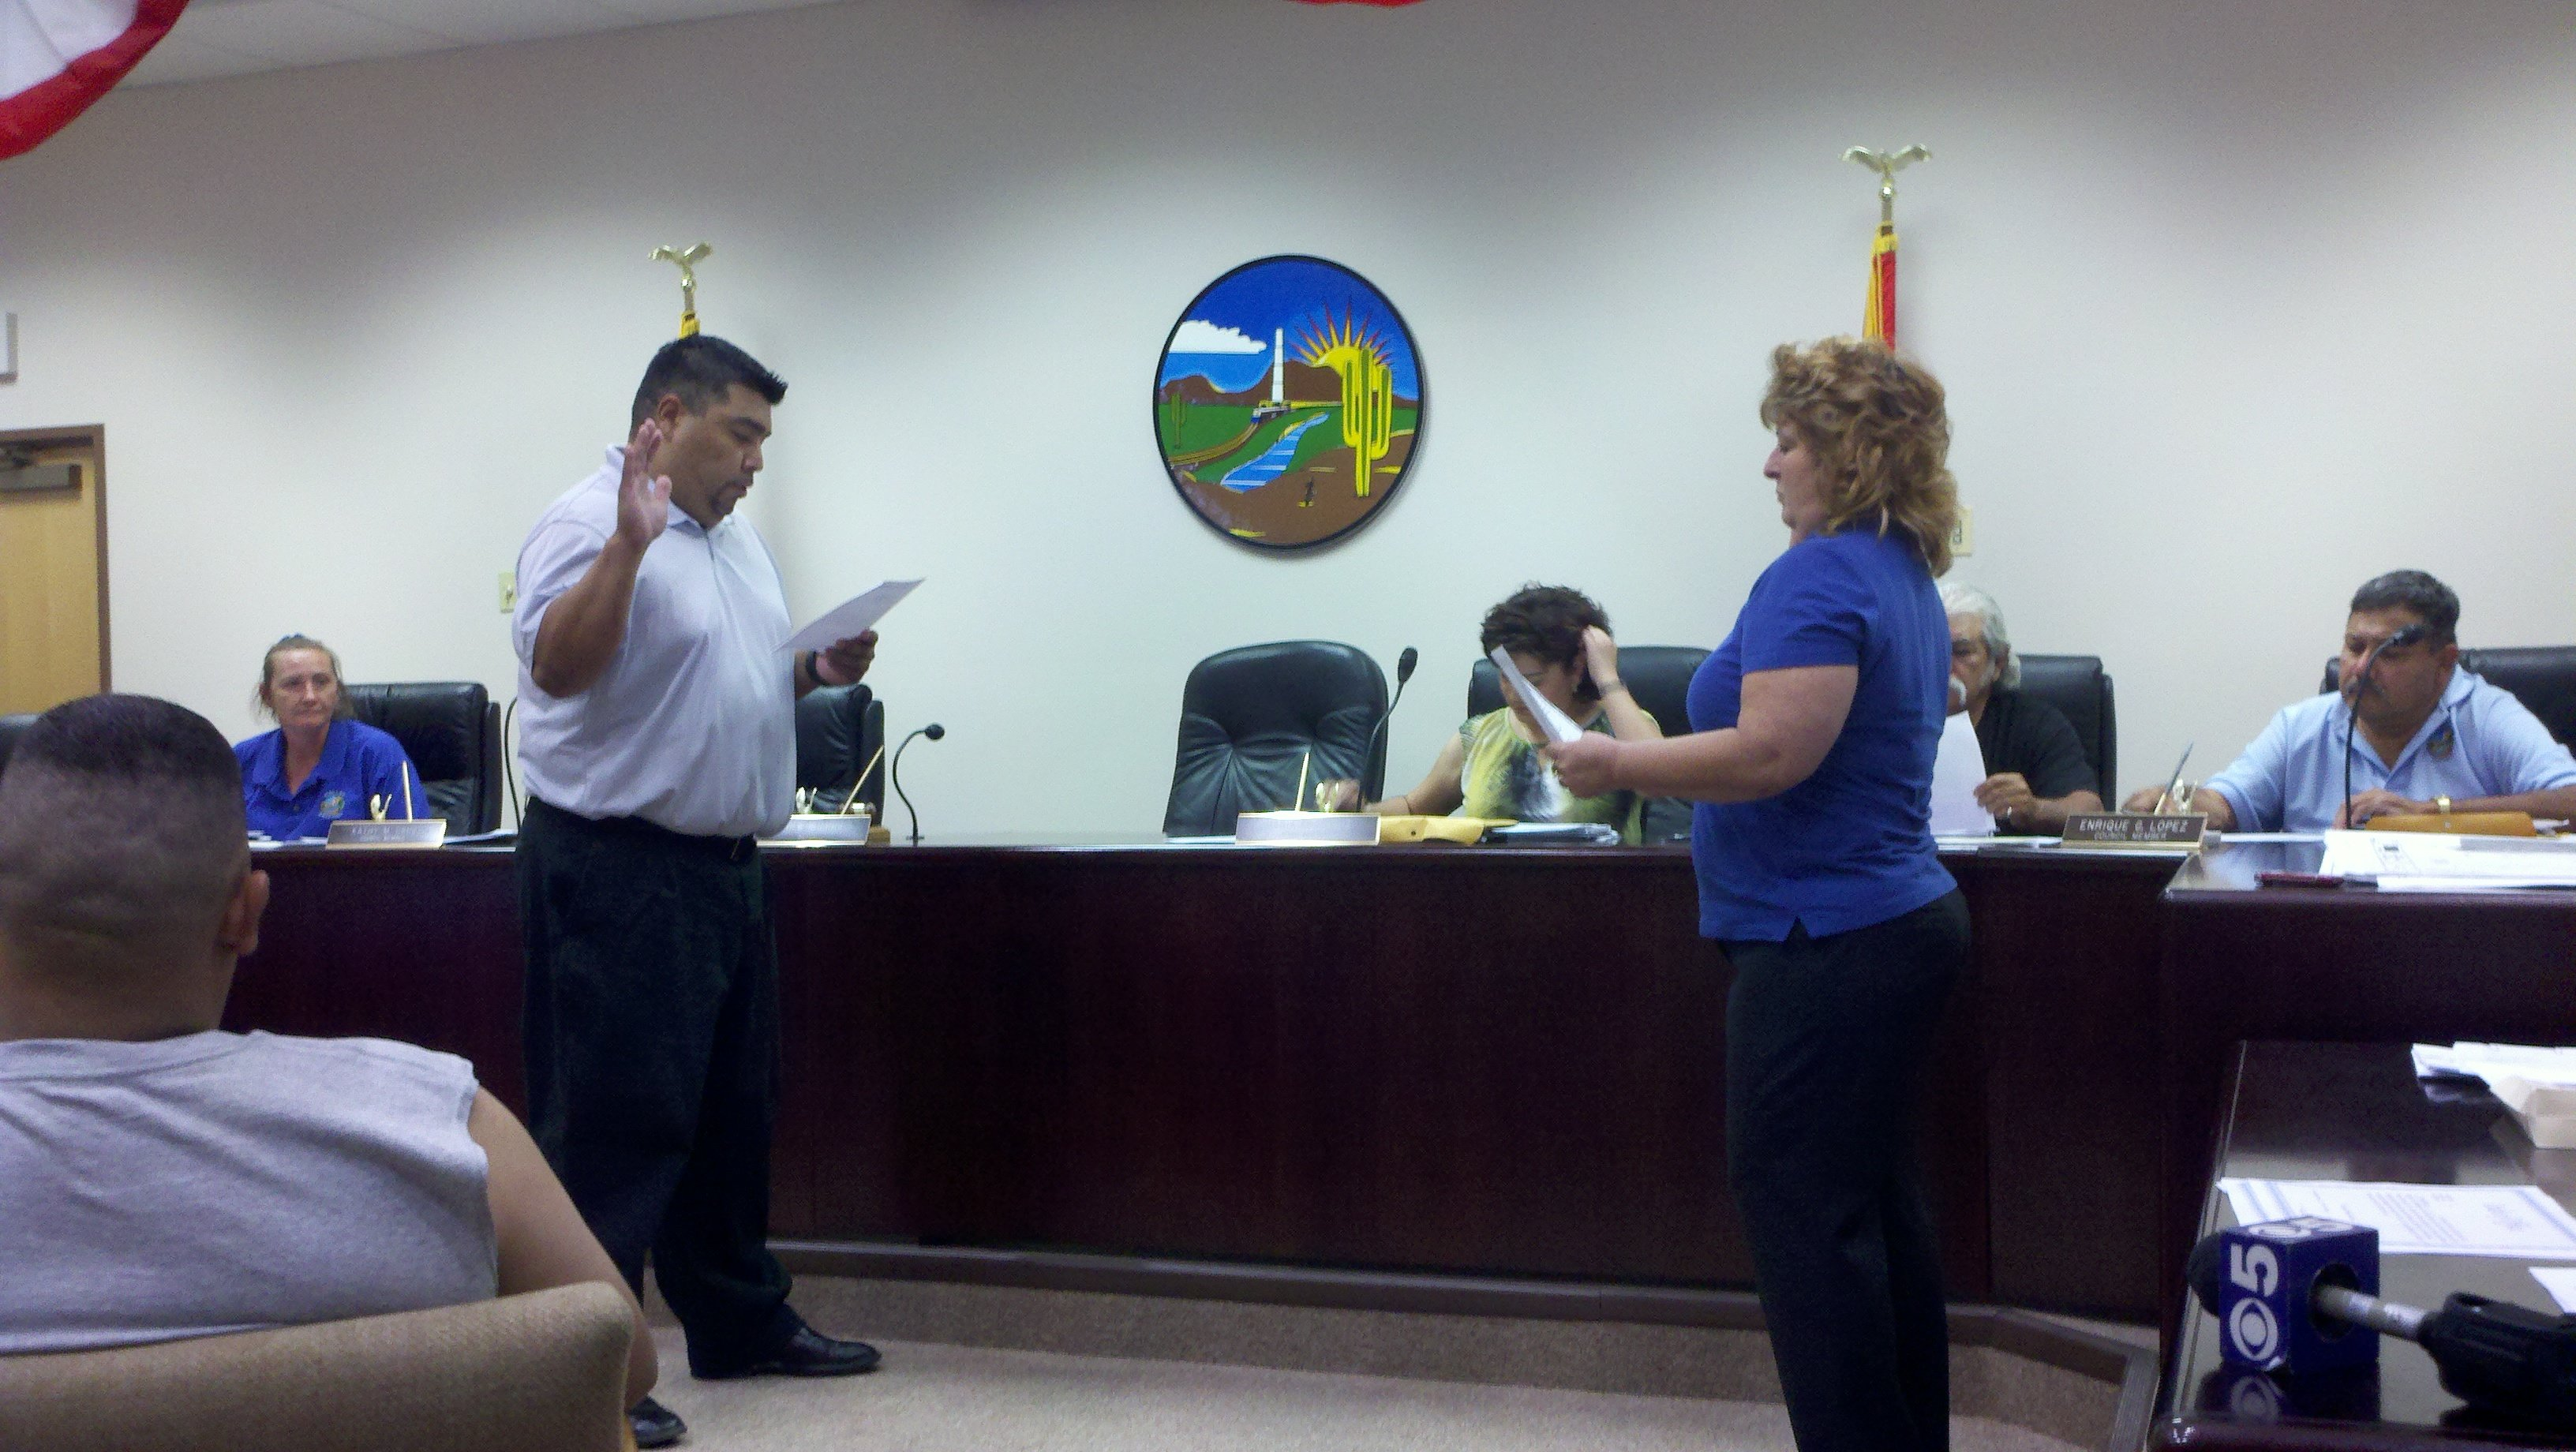 Charles Vega getting sworn in as mayor